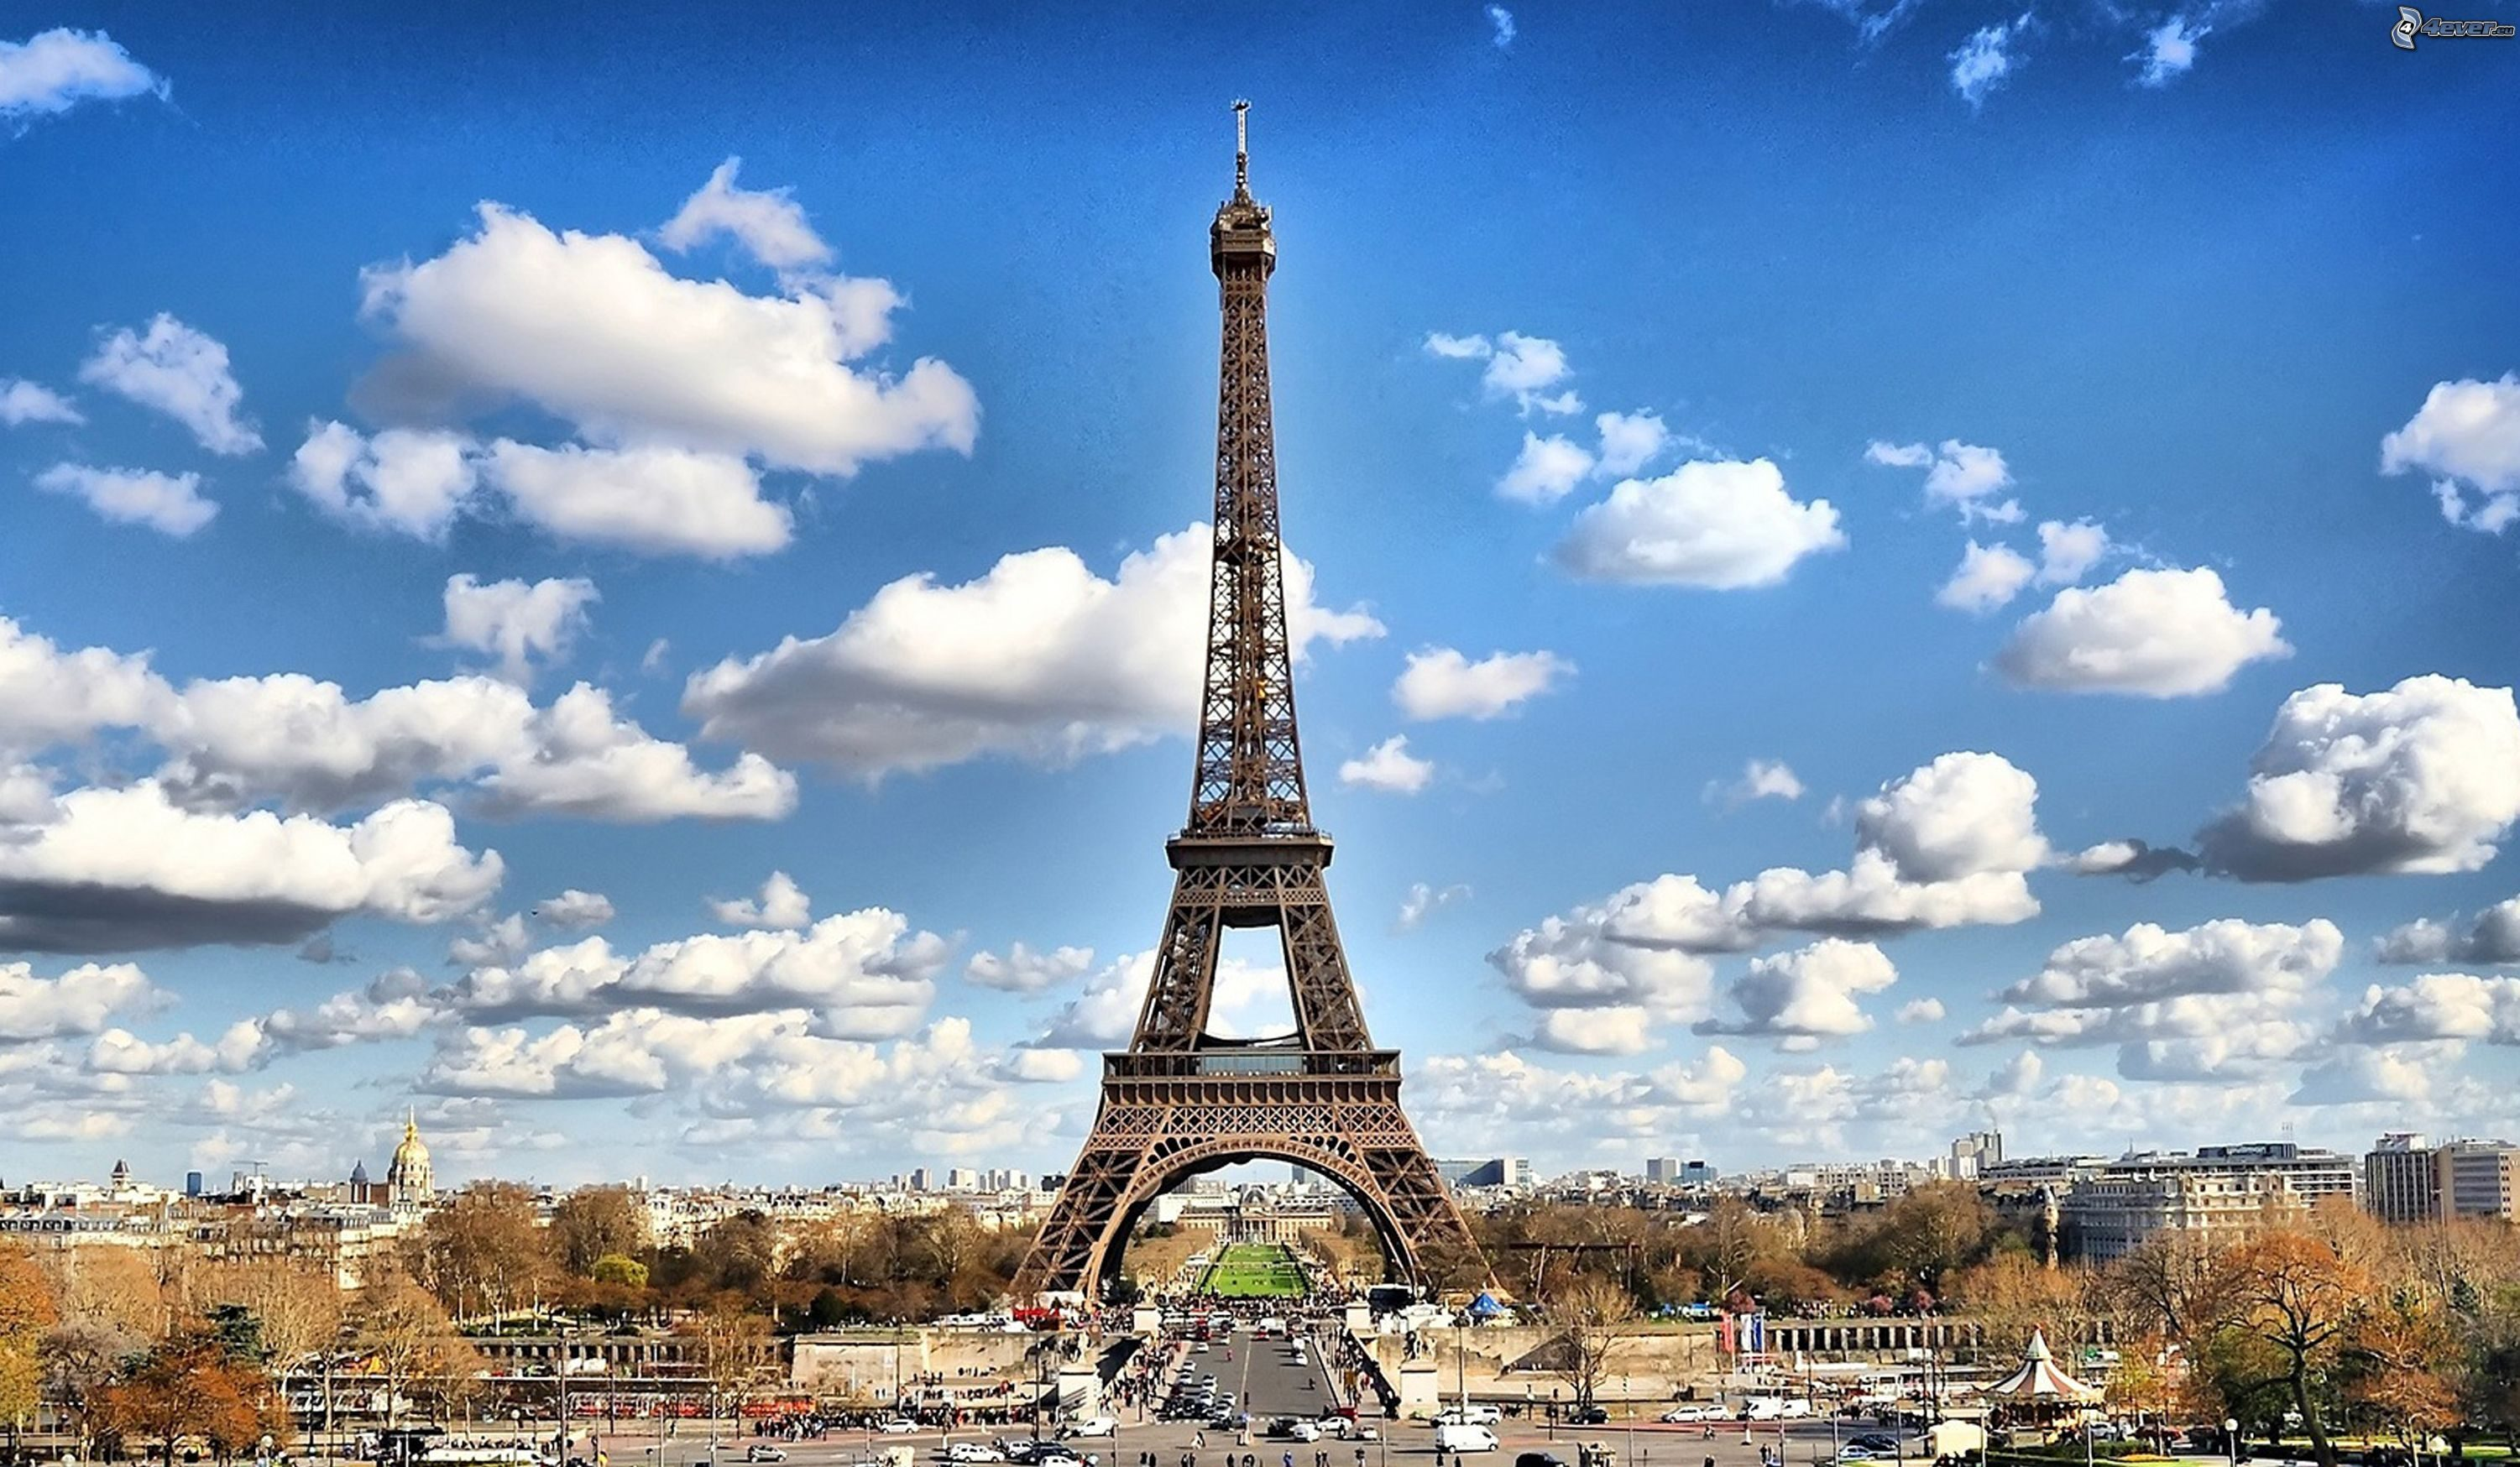 11 Hacks Every Tourist Should Know When Visiting the Eiffel